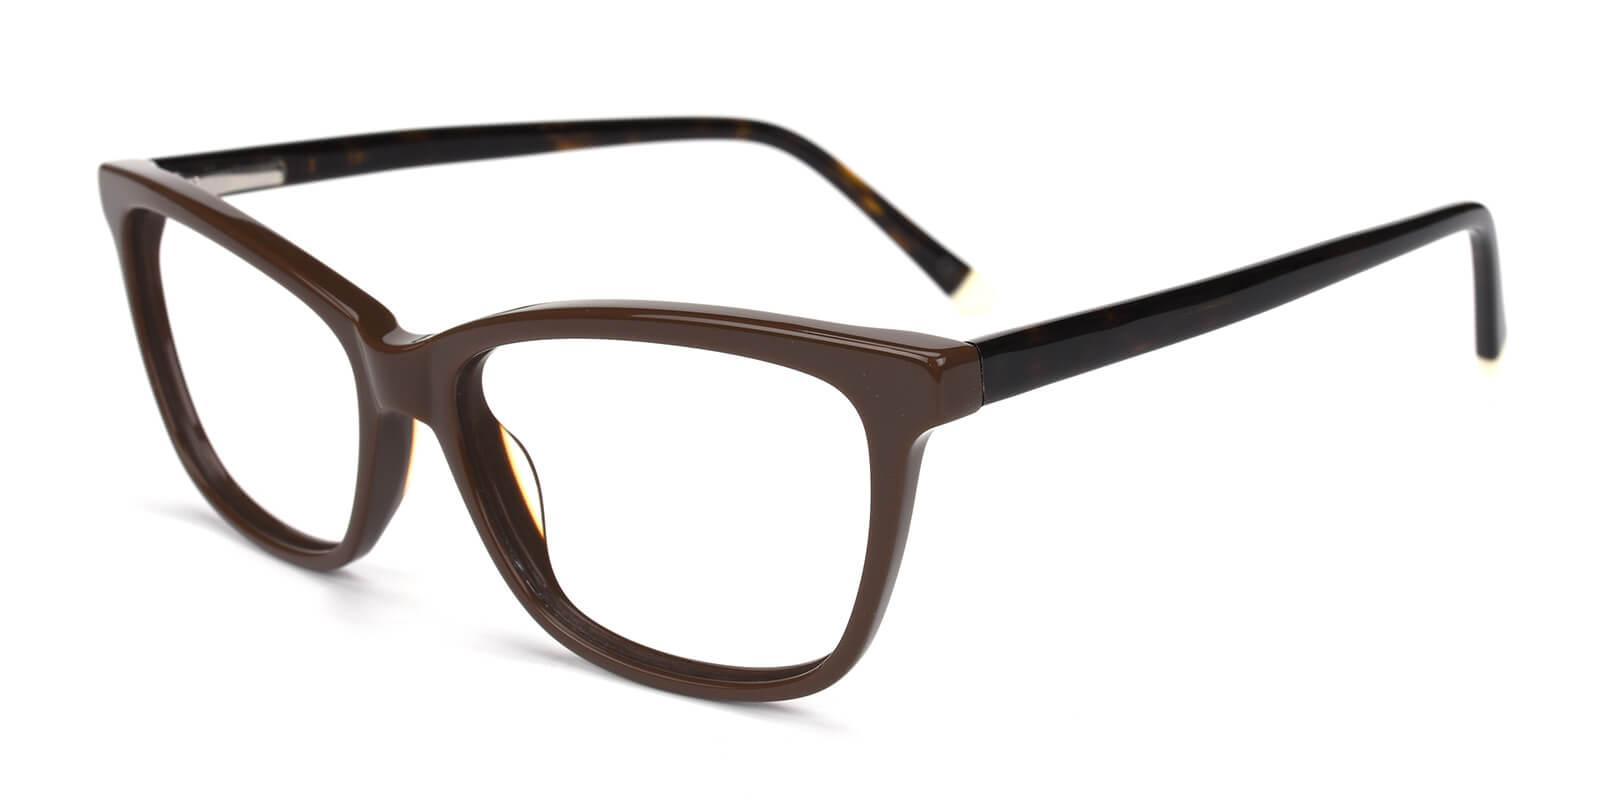 Clowdia-Brown-Square / Cat-Acetate-Eyeglasses-detail